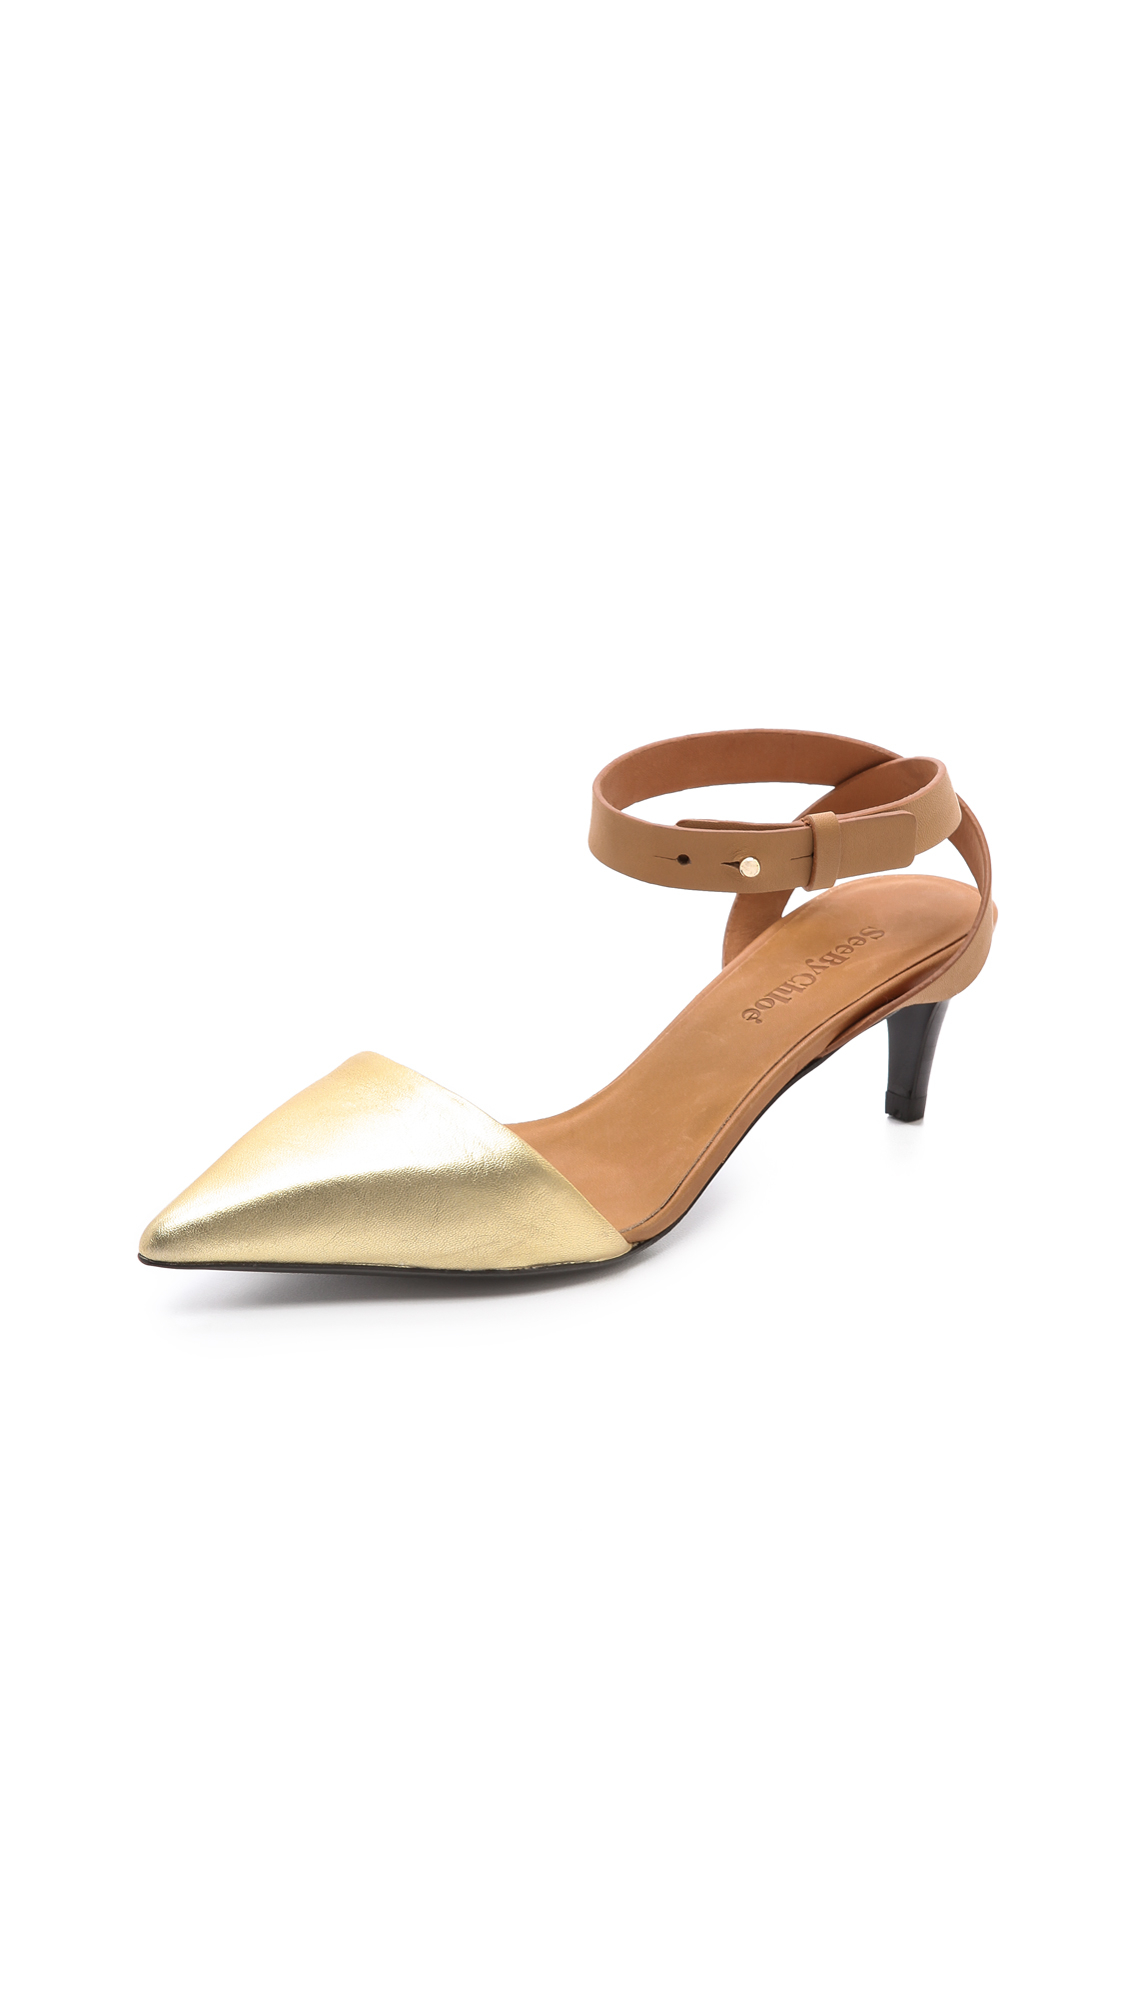 Chloé Embellished Pointed-Toe Pumps discount amazon outlet brand new unisex hot sale online free shipping deals t90cdG